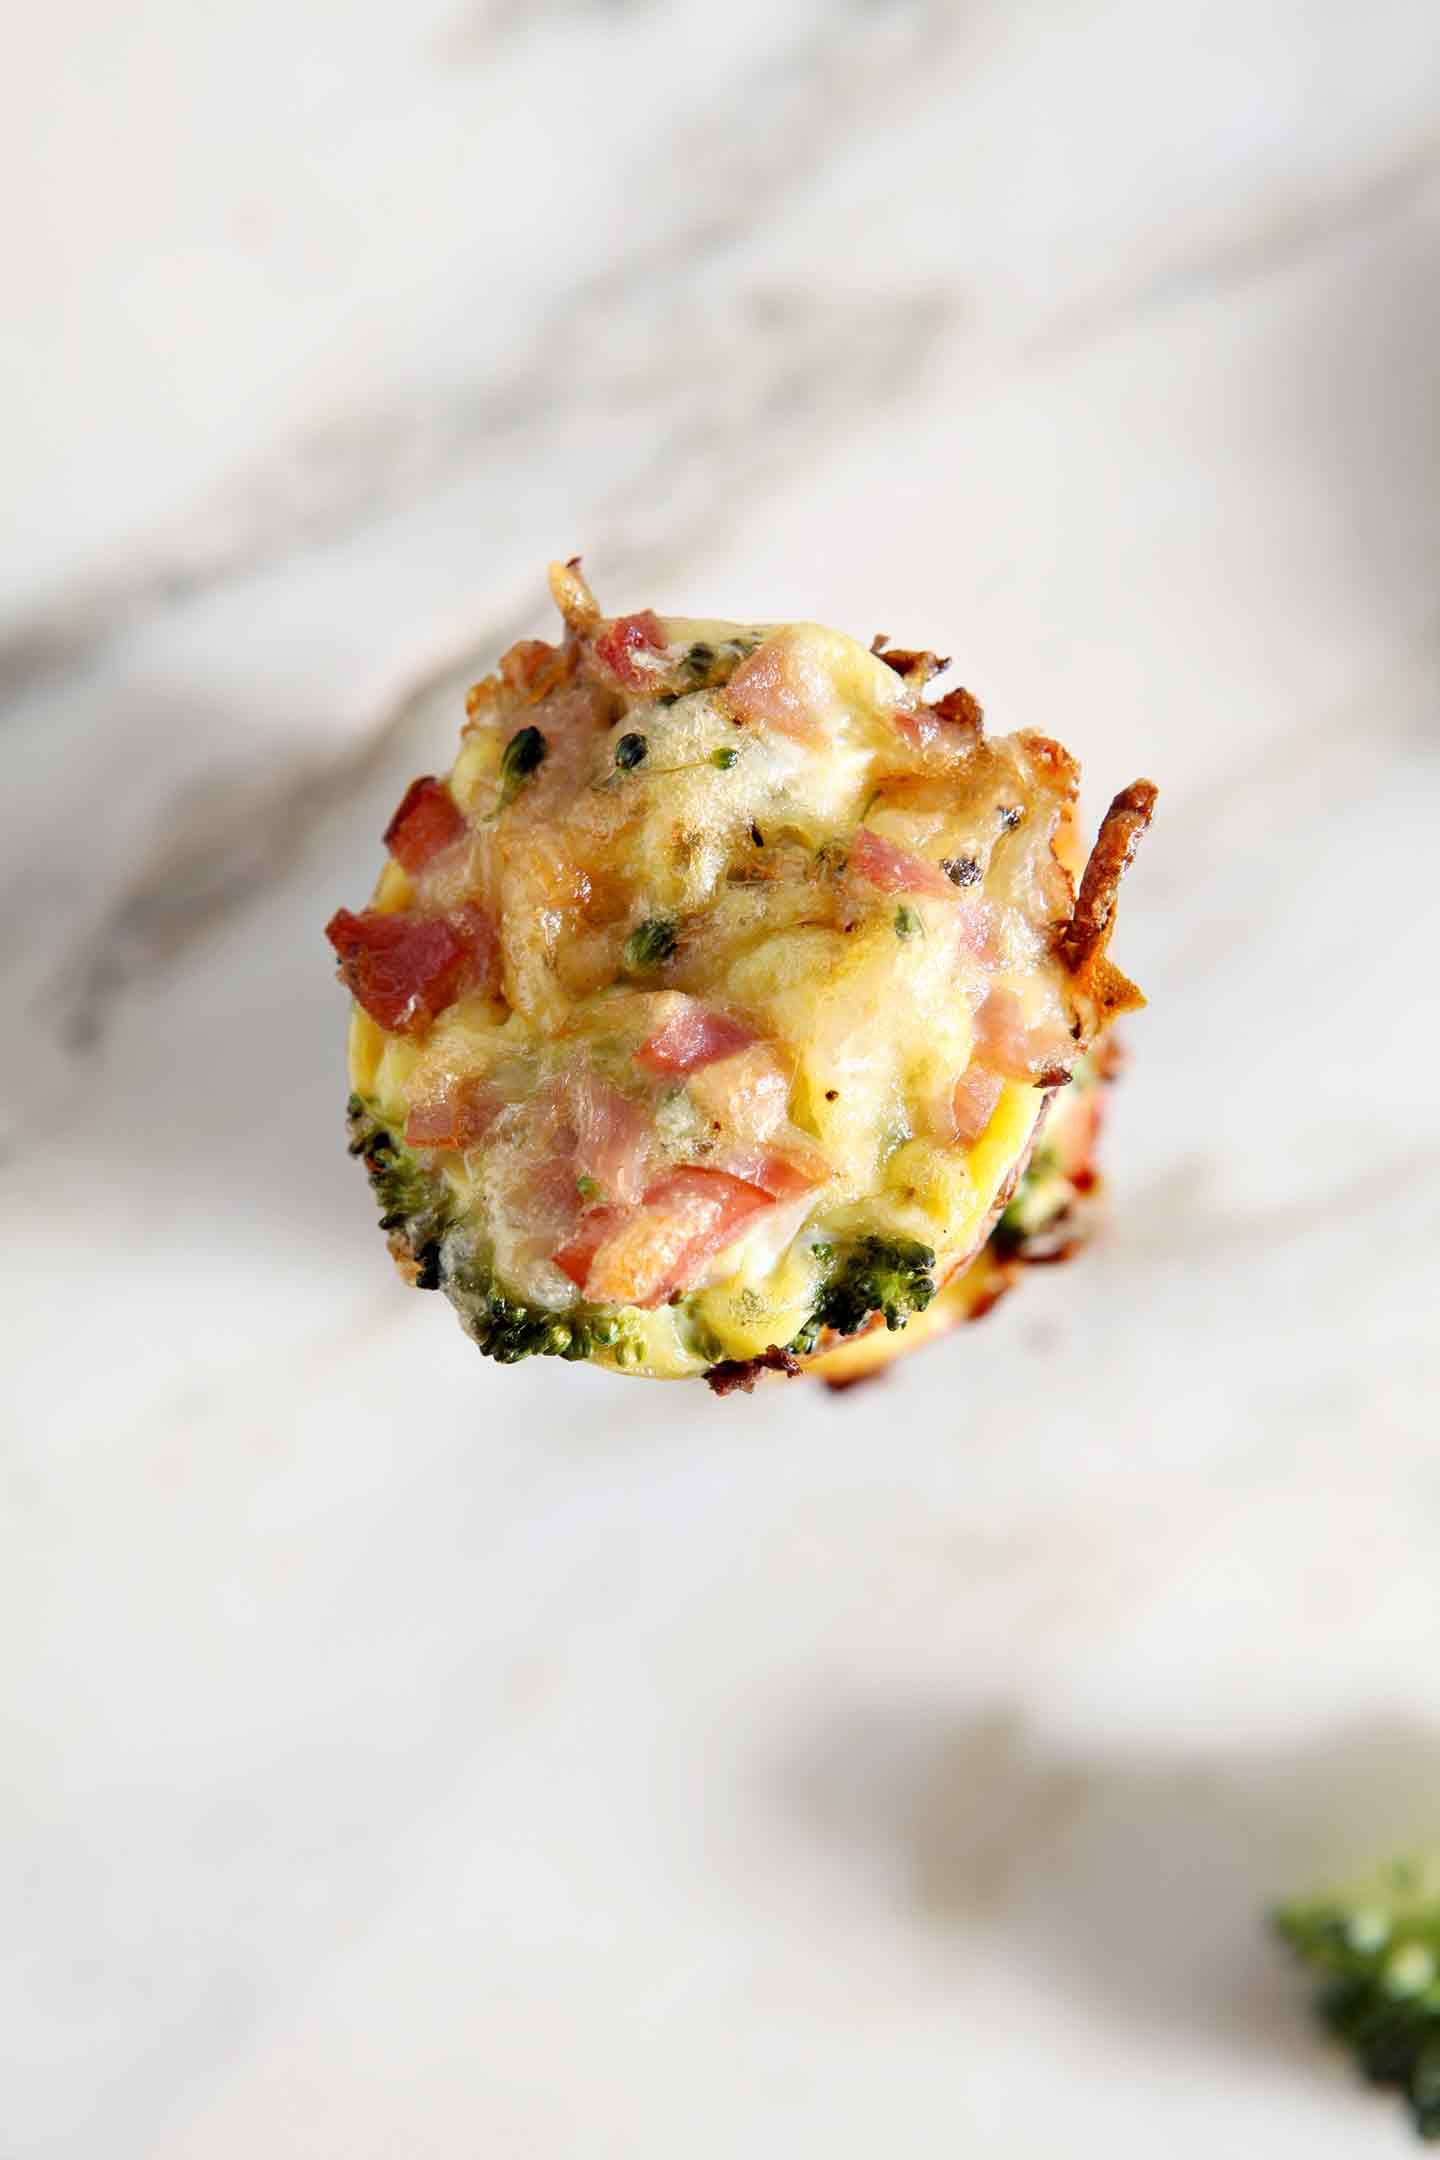 Serve Gluten Free Broccoli Quiche Lorraine Bites as a quick, easy breakfast! Serve these to your mom on Mother's Day, at a springtime brunch or anytime! #ad #recipe #brunch